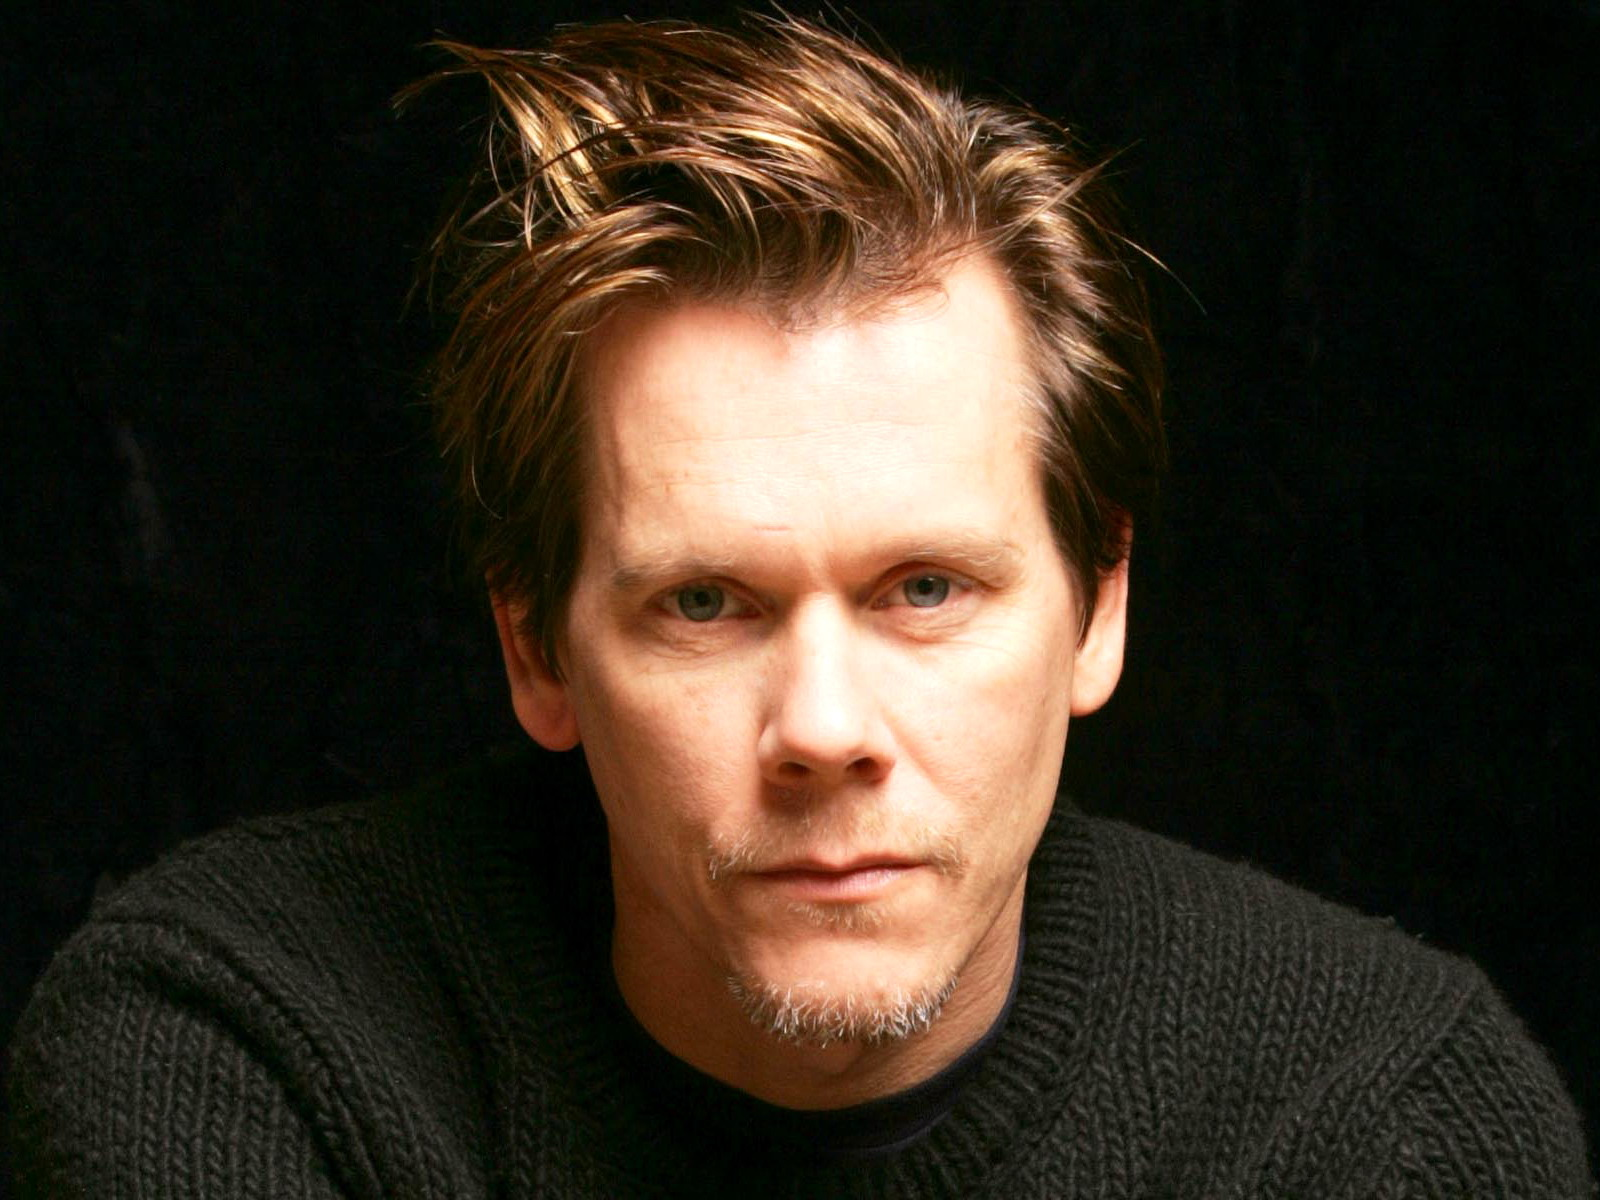 1600x1200 - Kevin Bacon Wallpapers 15